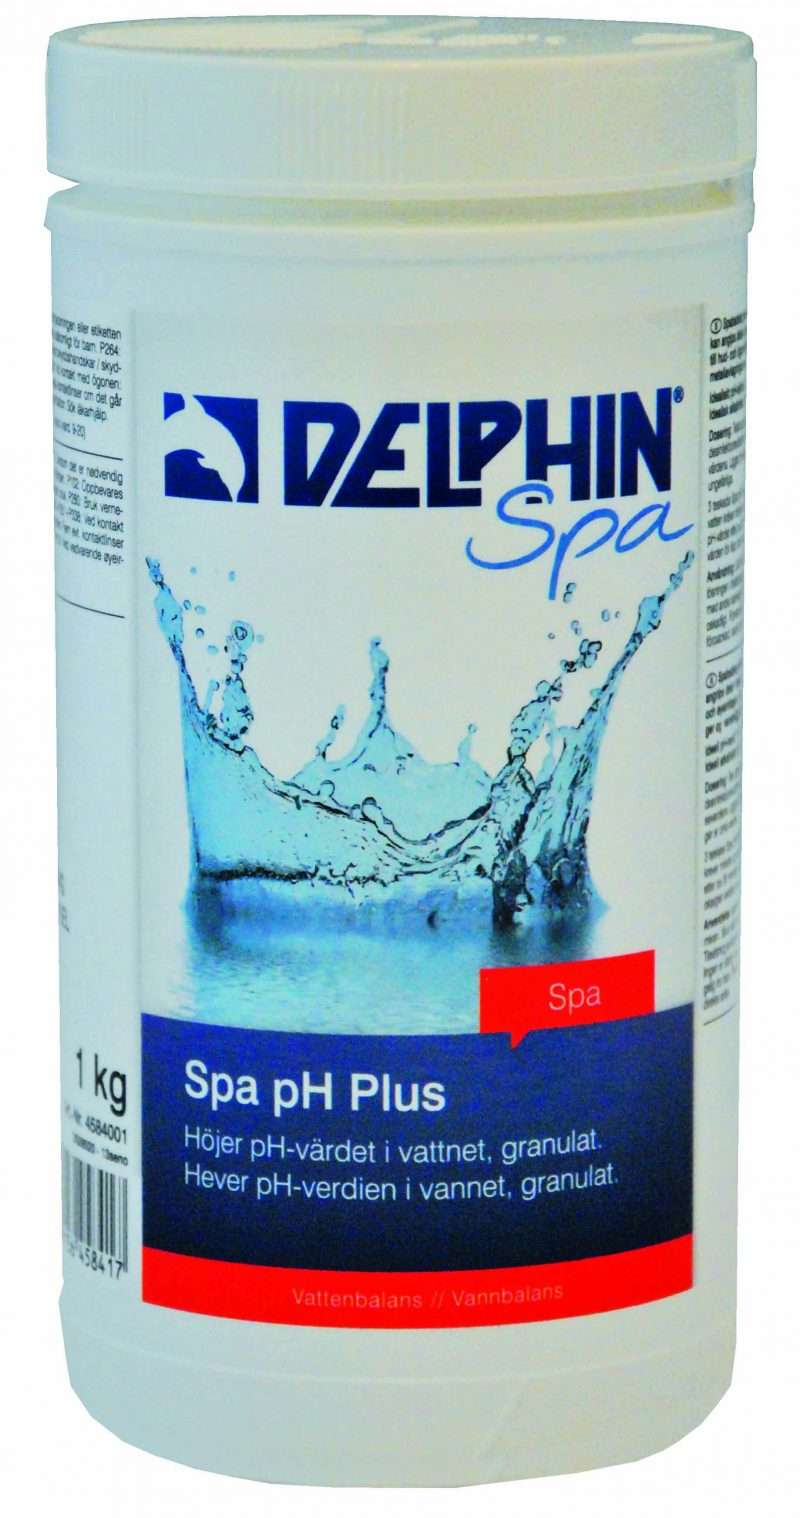 Delphin Spa pH Plus